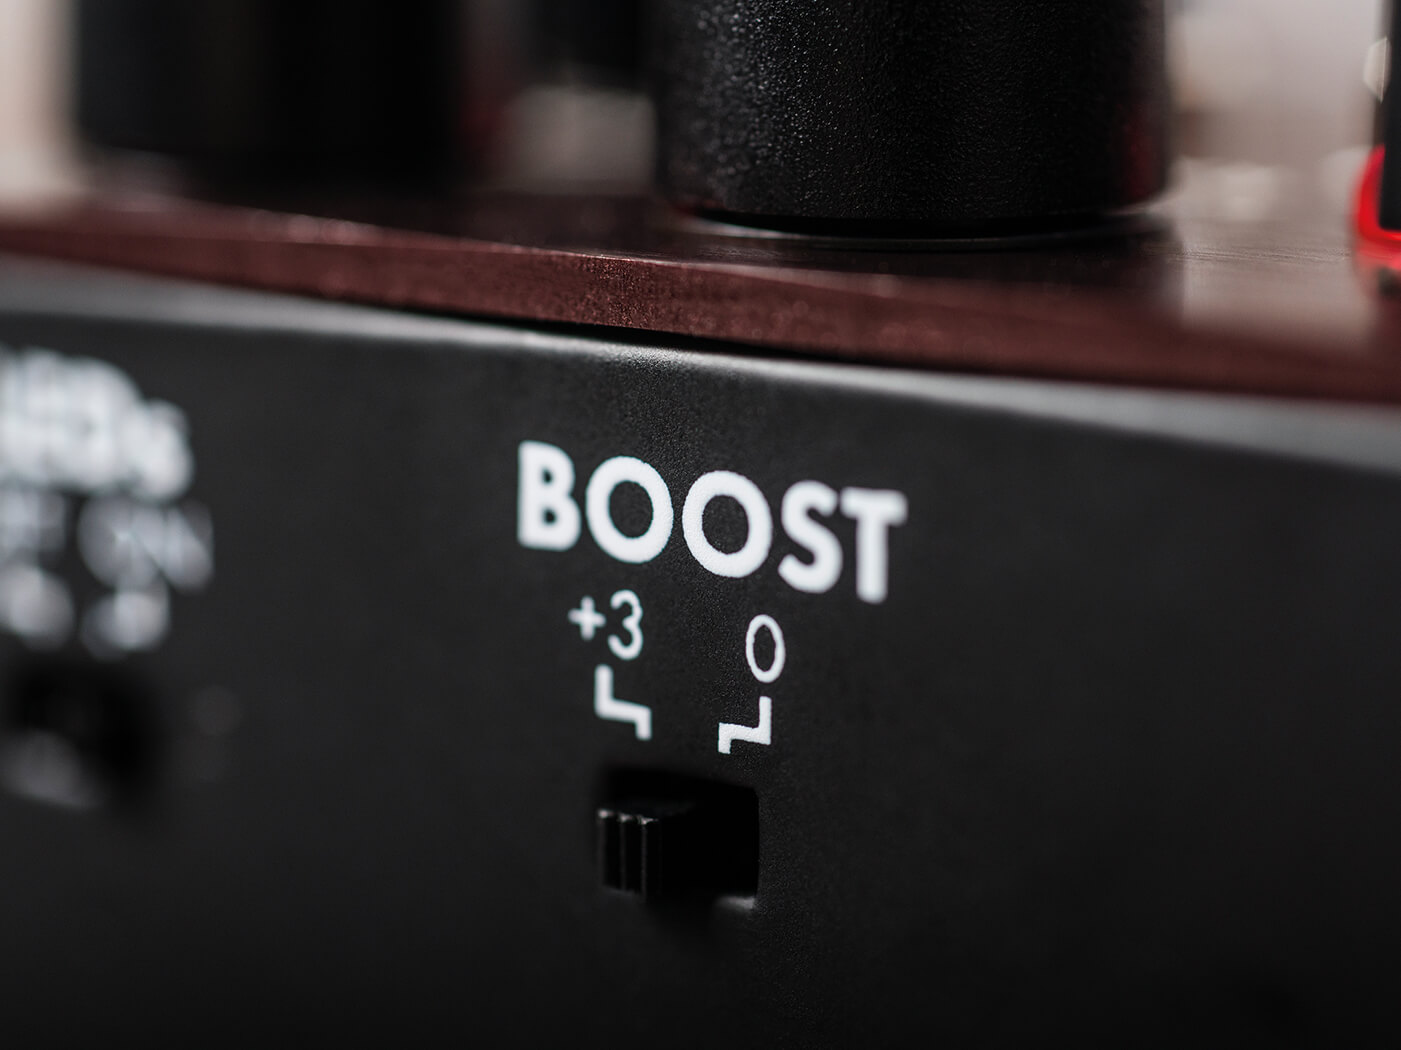 Review Fender Lost Highway boost